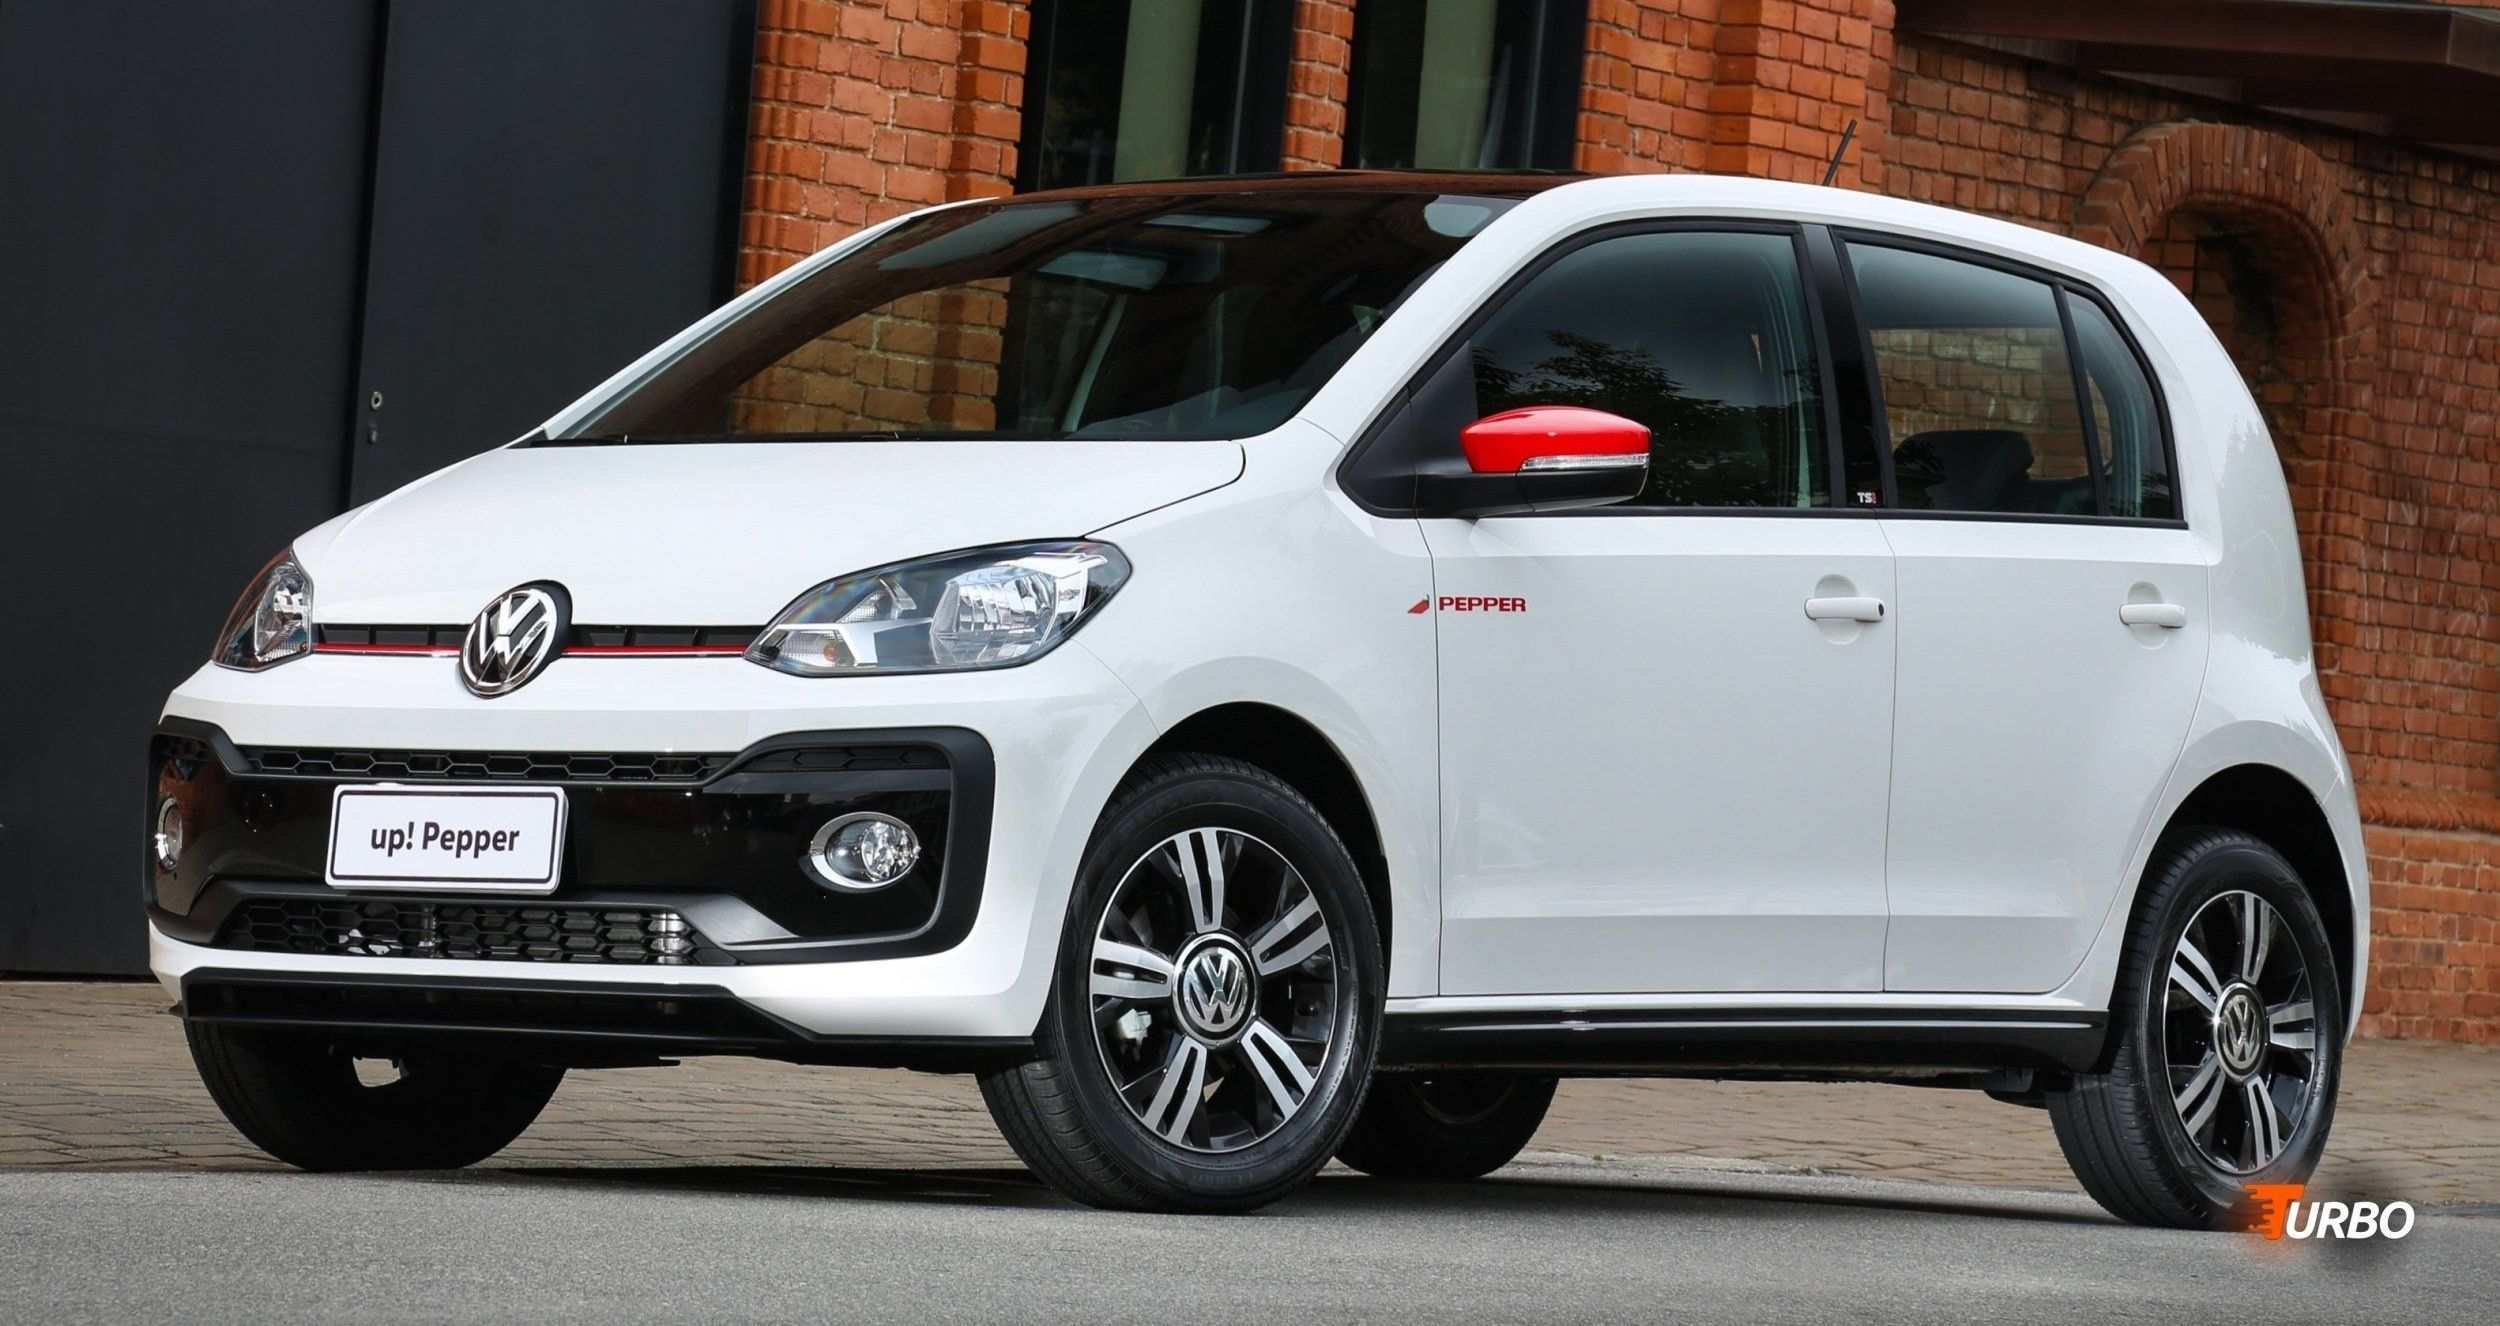 63 All New Best Volkswagen Up Pepper 2019 Redesign Price And Review Spy Shoot with Best Volkswagen Up Pepper 2019 Redesign Price And Review